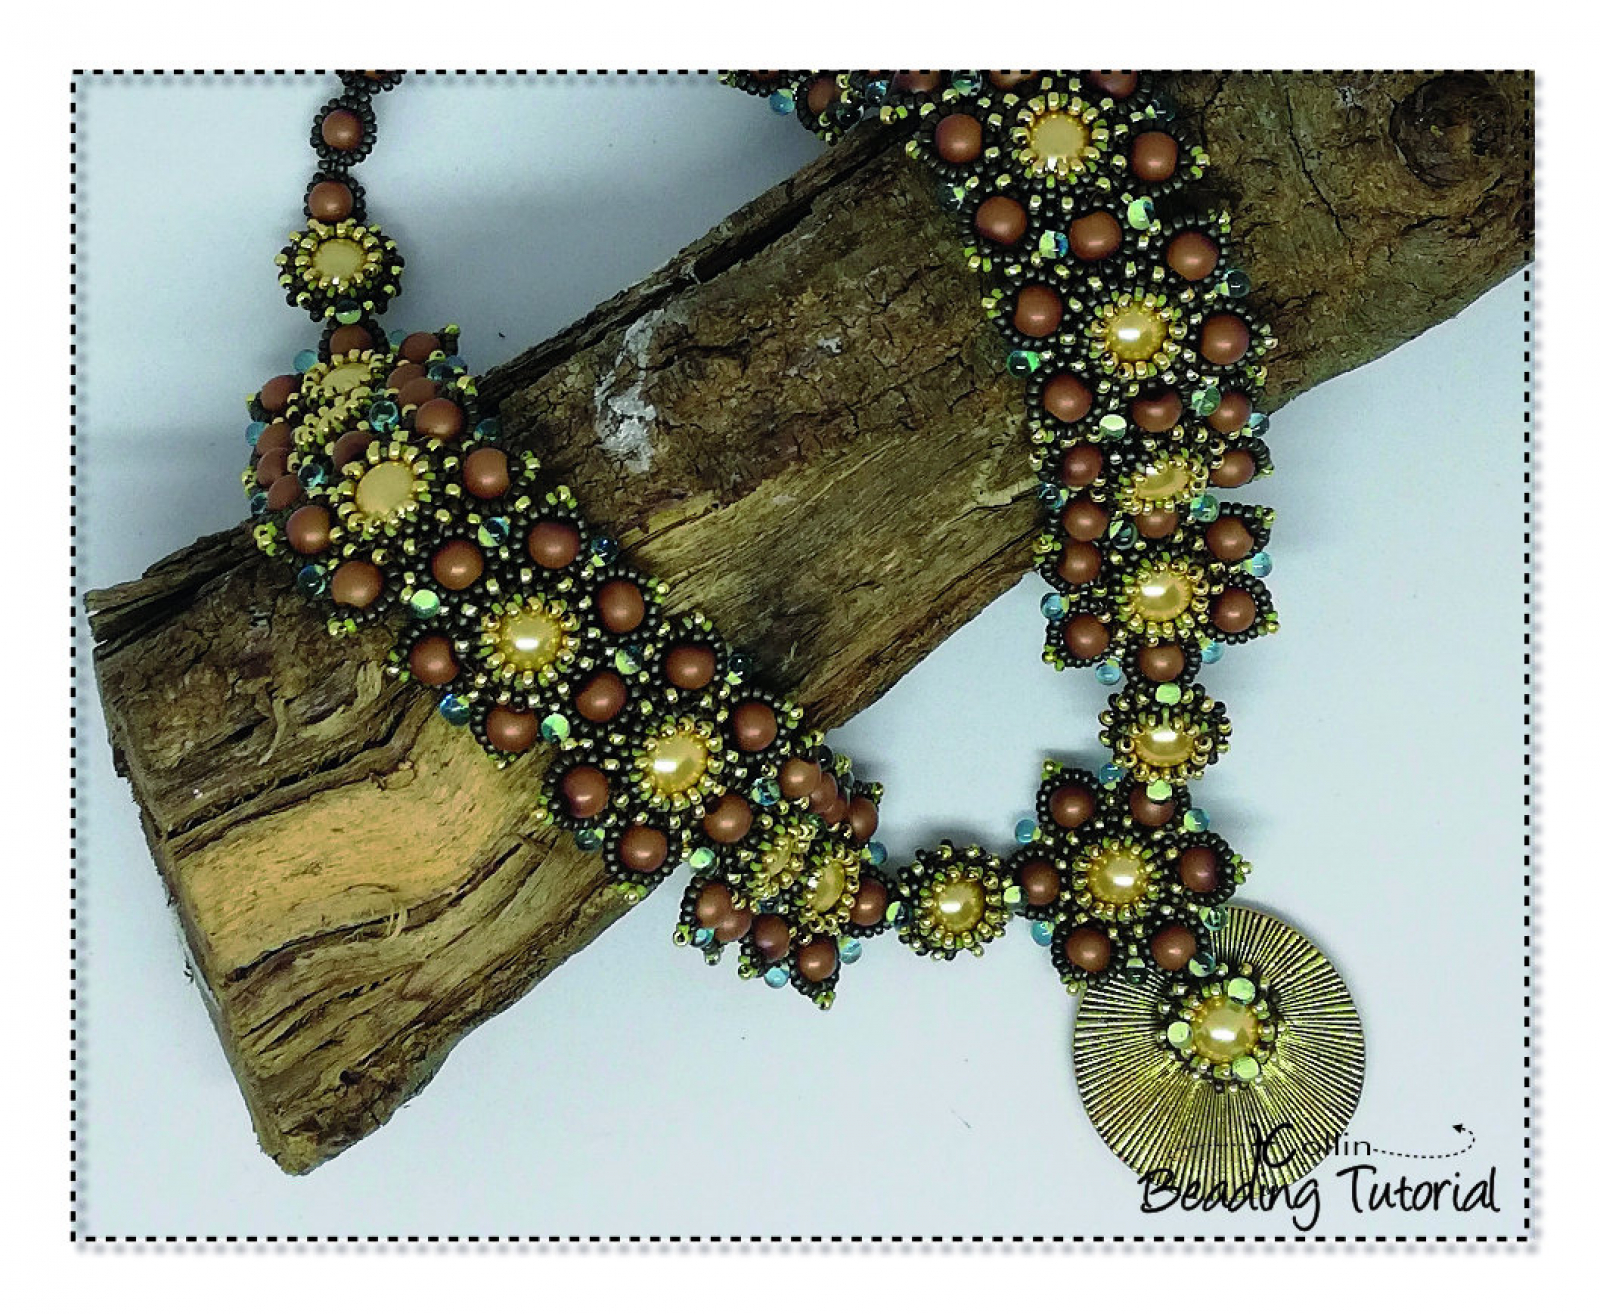 Beading Patterns, Tutorials, Big Beaded Necklace - FANCY THAT